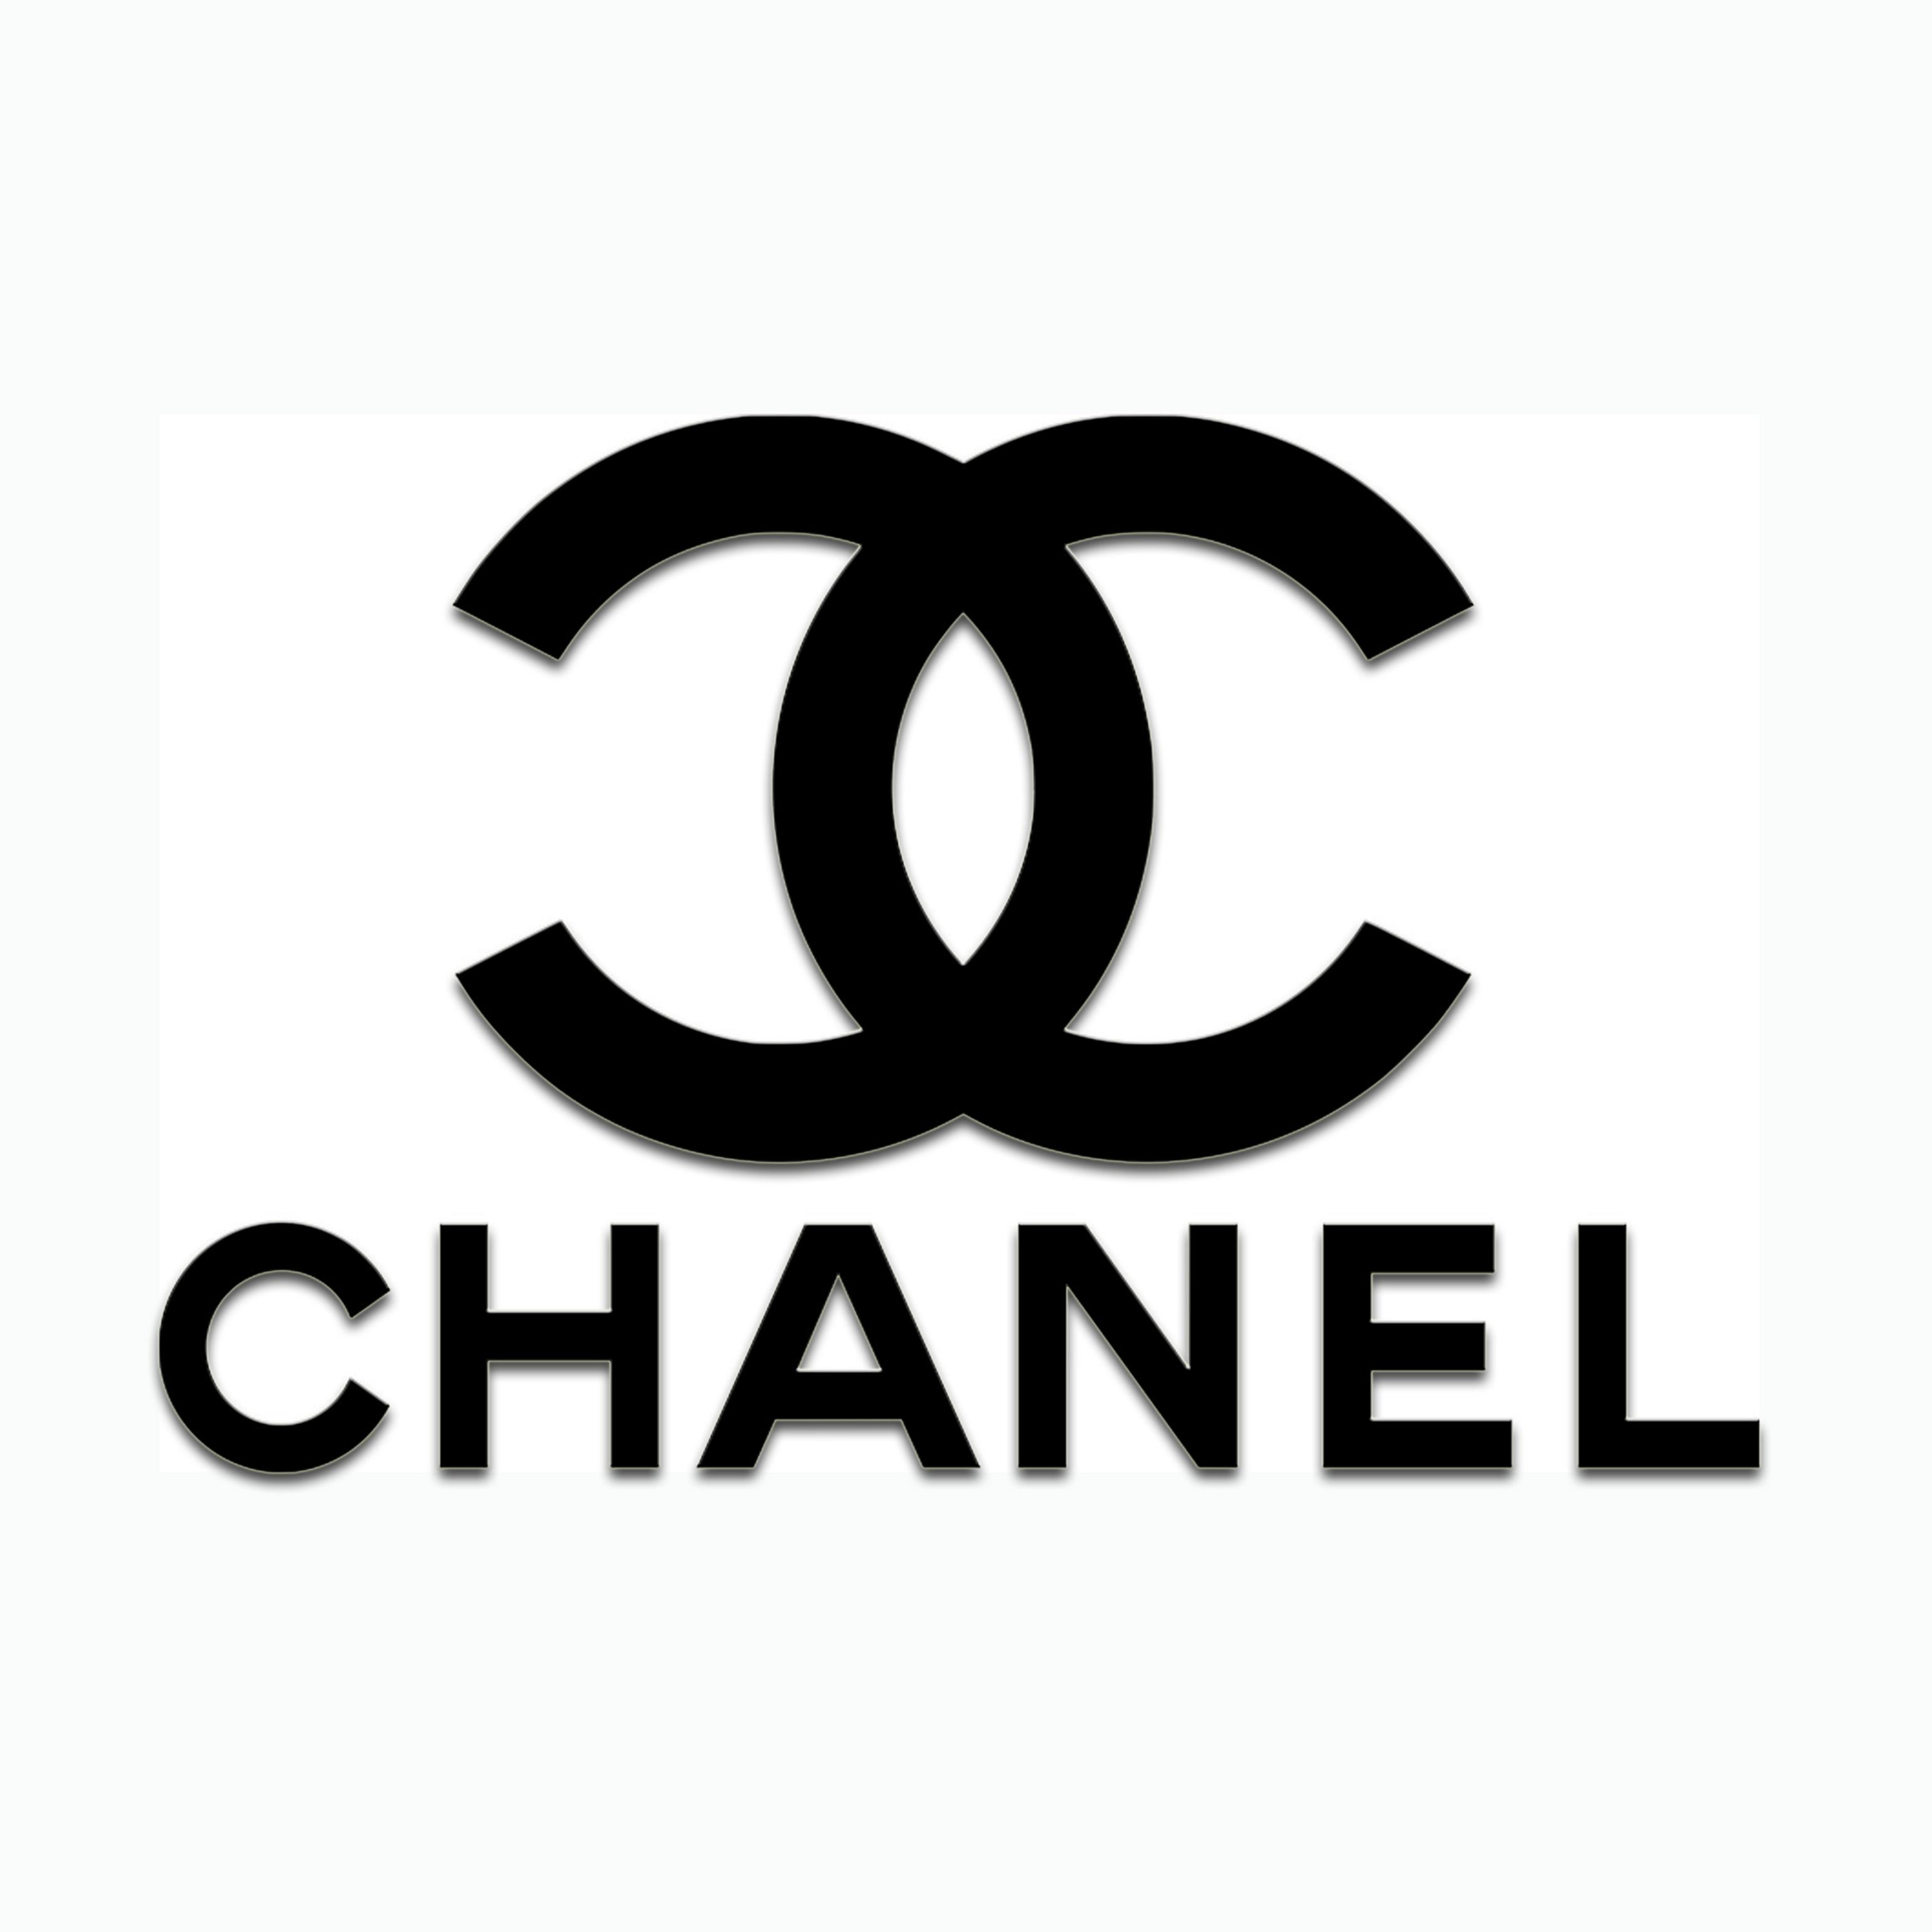 21 Luxury Brands How To Pronounce Them Correctly